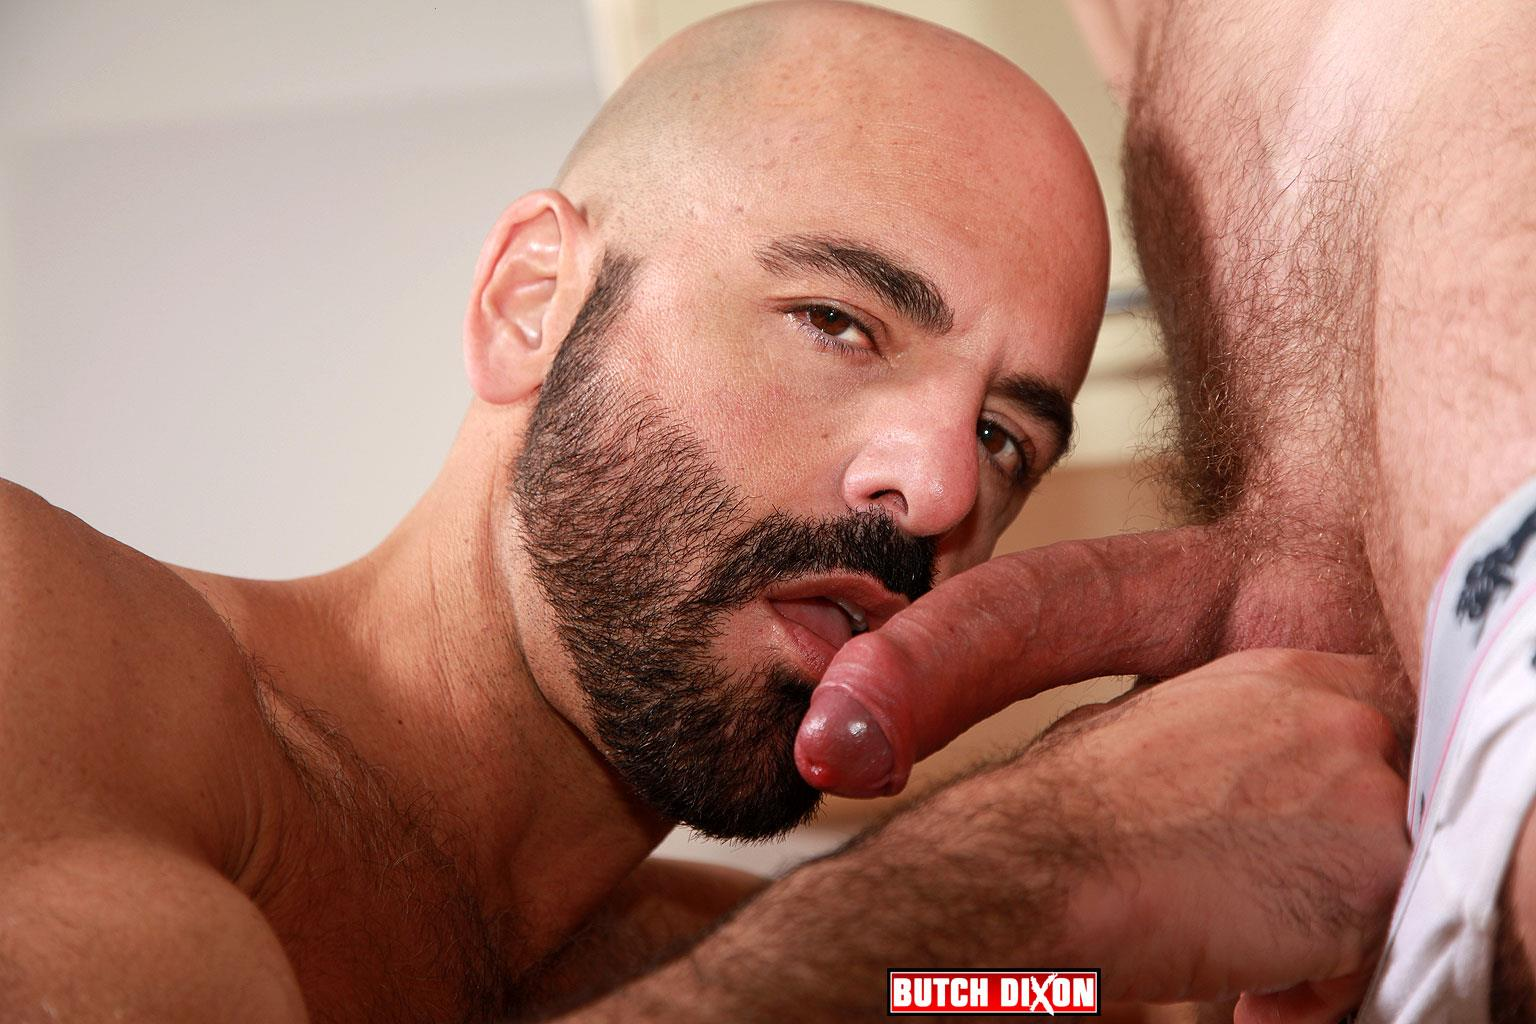 Butch-Dixon-Adam-Russo-and-Adam-Dacre-Getting-Fucked-By-A-Big-Uncut-Cock-Amateur-Gay-Porn-02 Adam Russo Getting A Big Bareback Uncut Cock Up His Hairy Ass